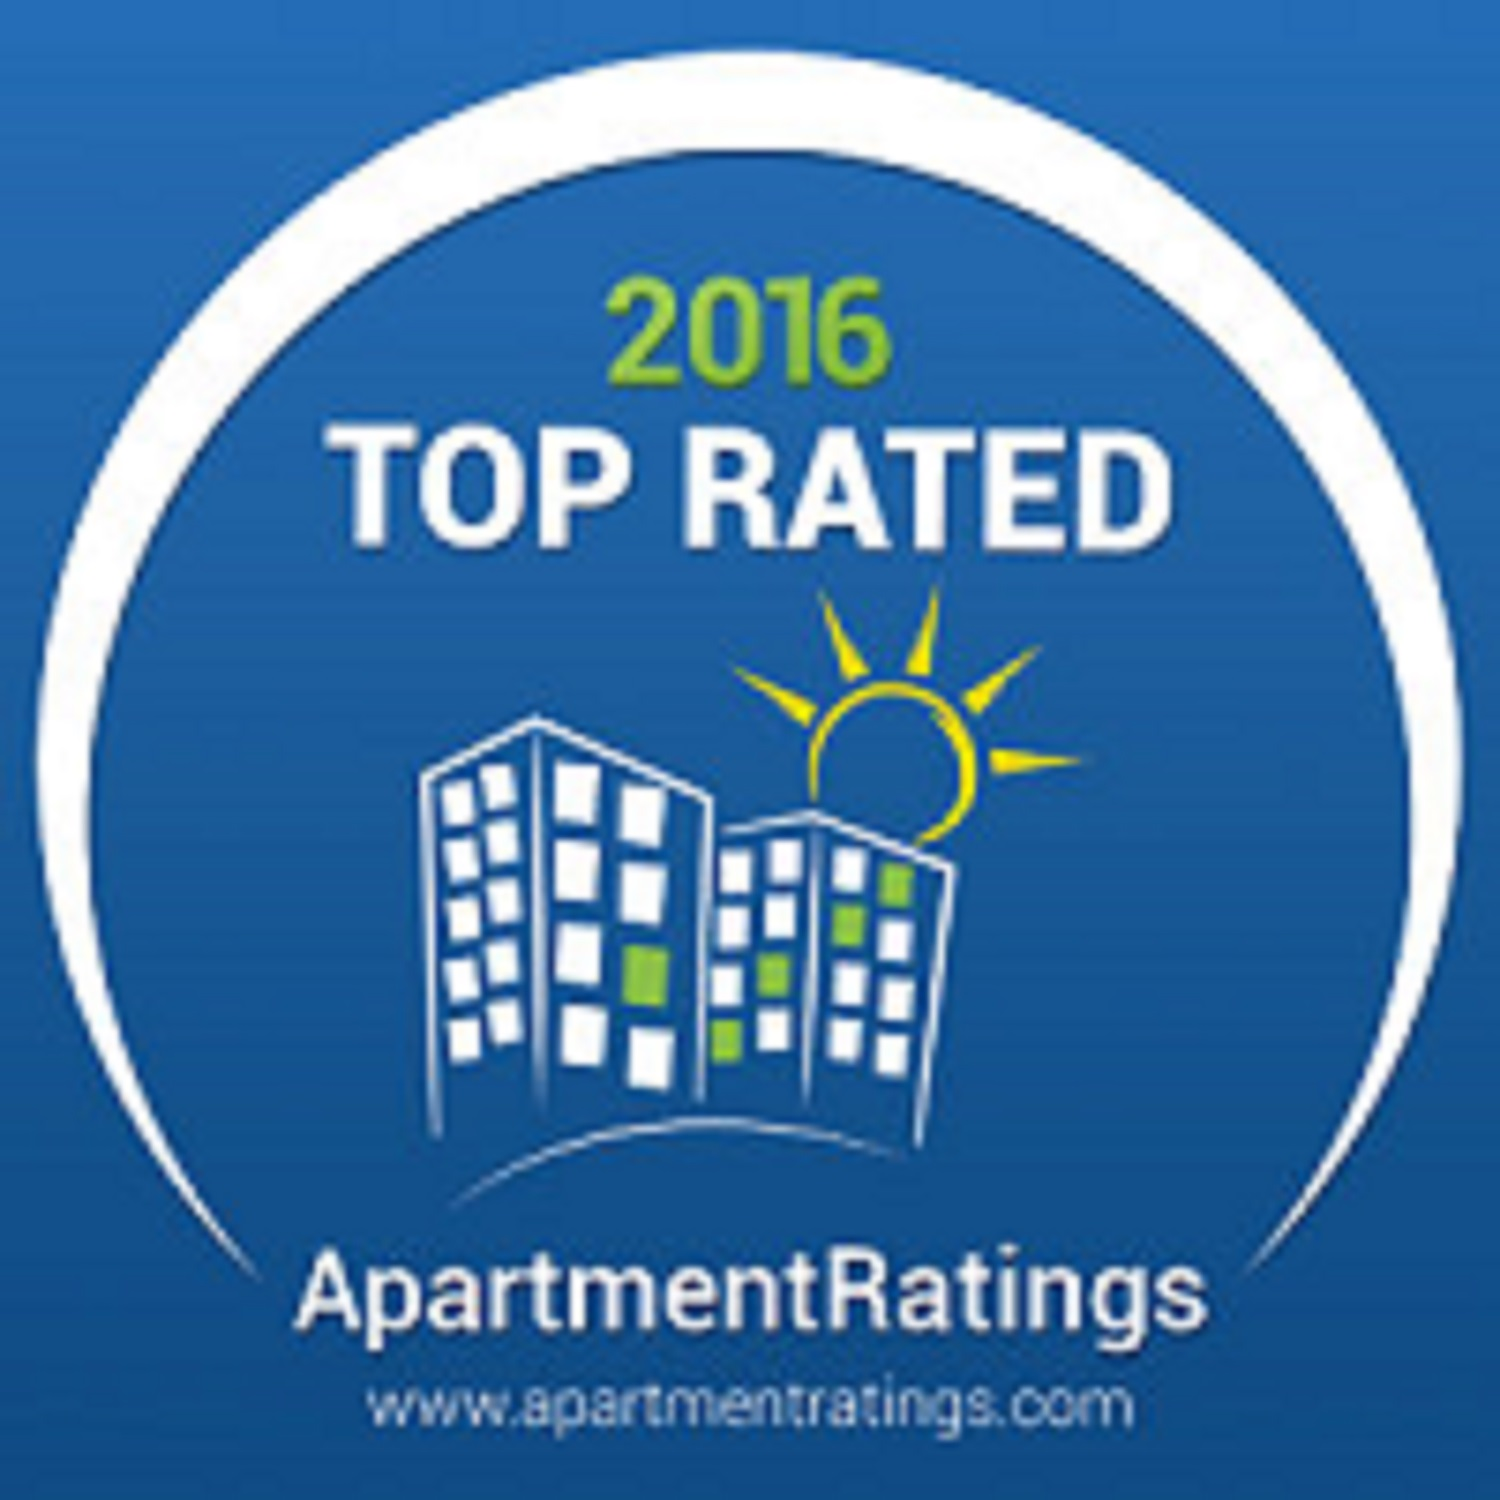 Top-Rated Apartments!